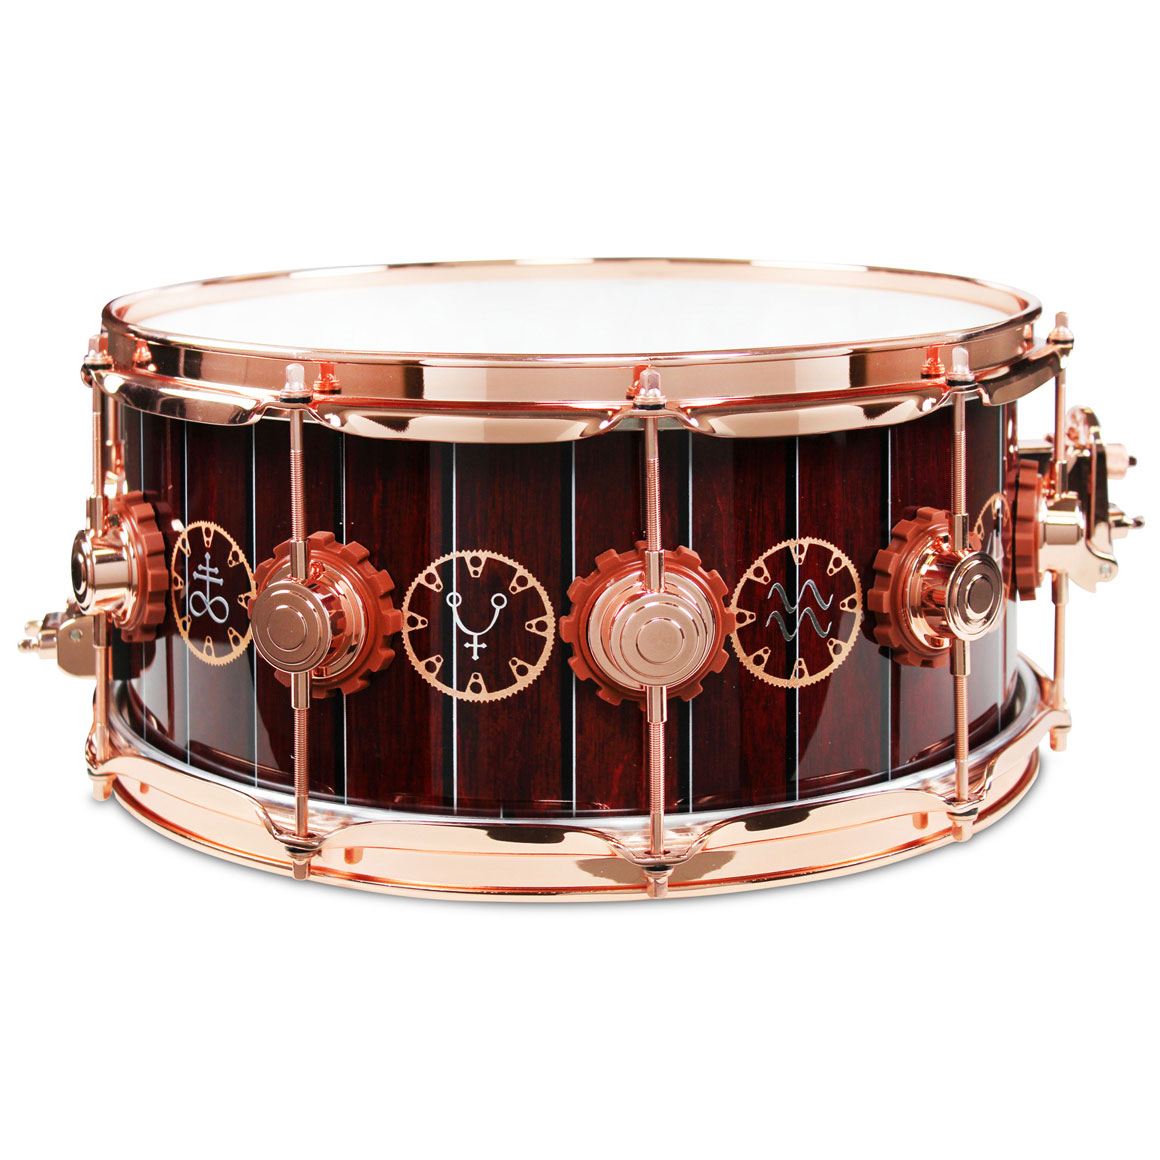 "DW 6.5"" x 14"" Neil Peart Time Machine Snare Drum"